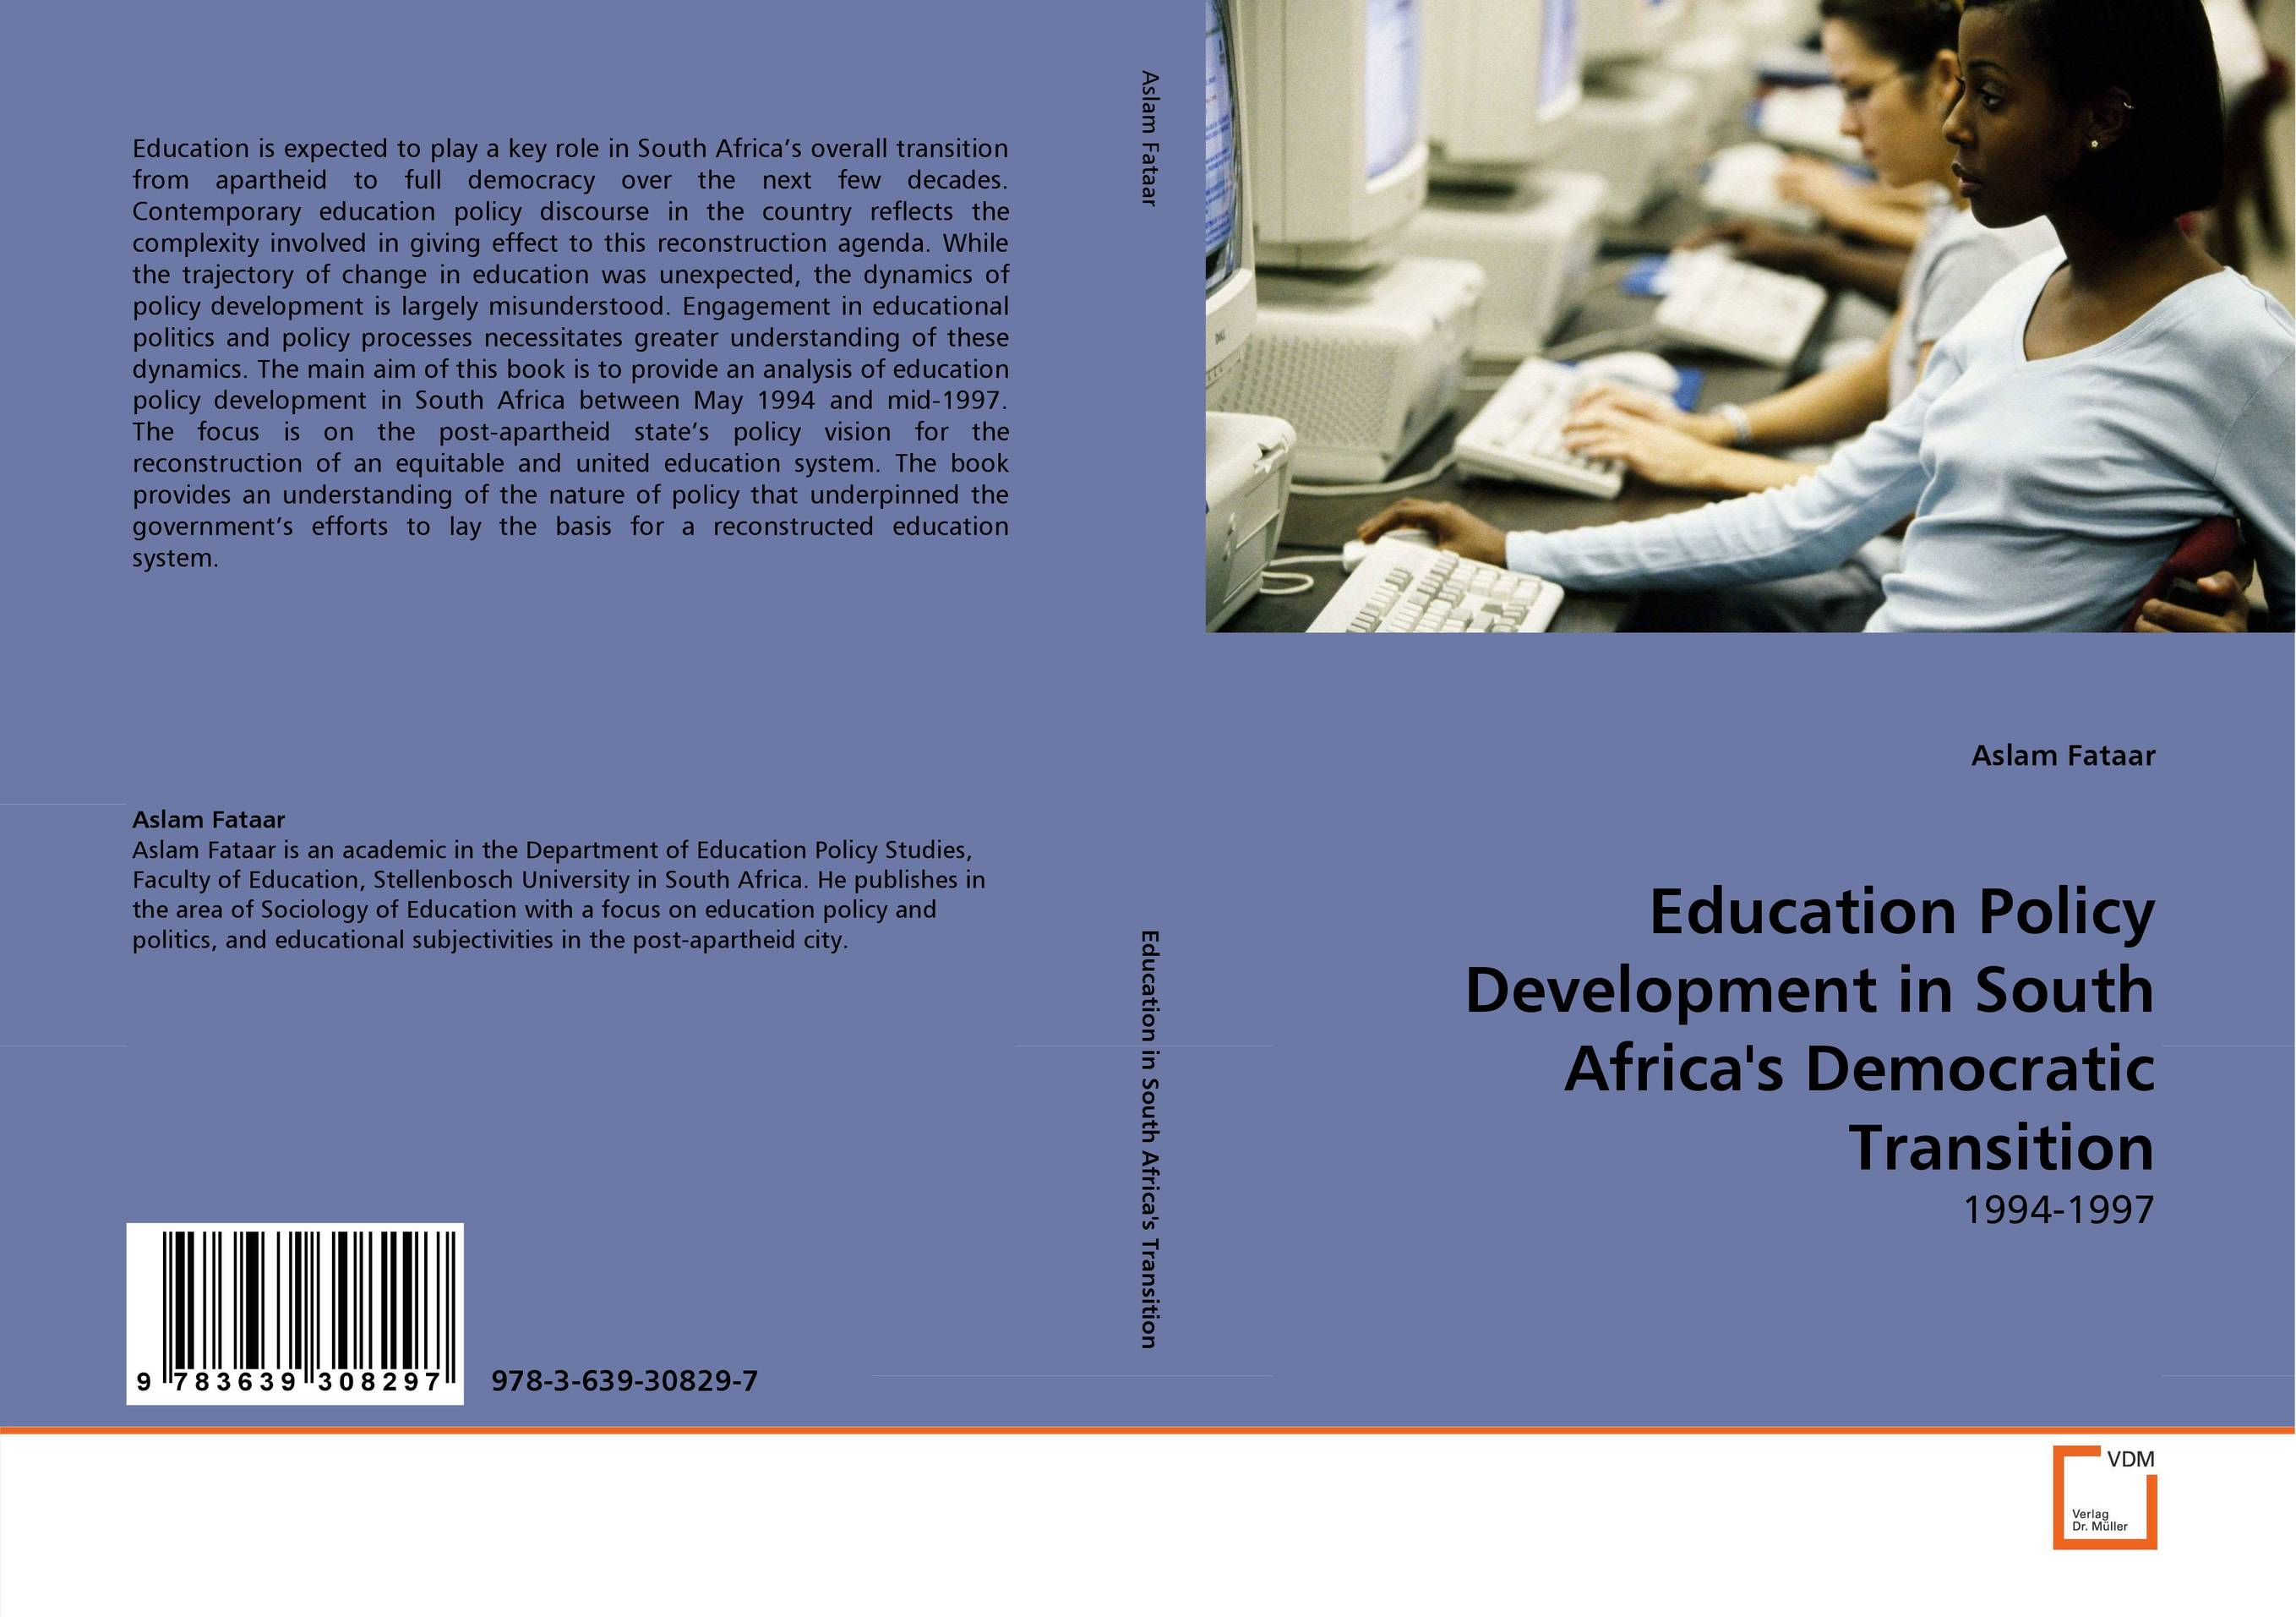 Education Policy Development in South Africa''s Democratic Transition